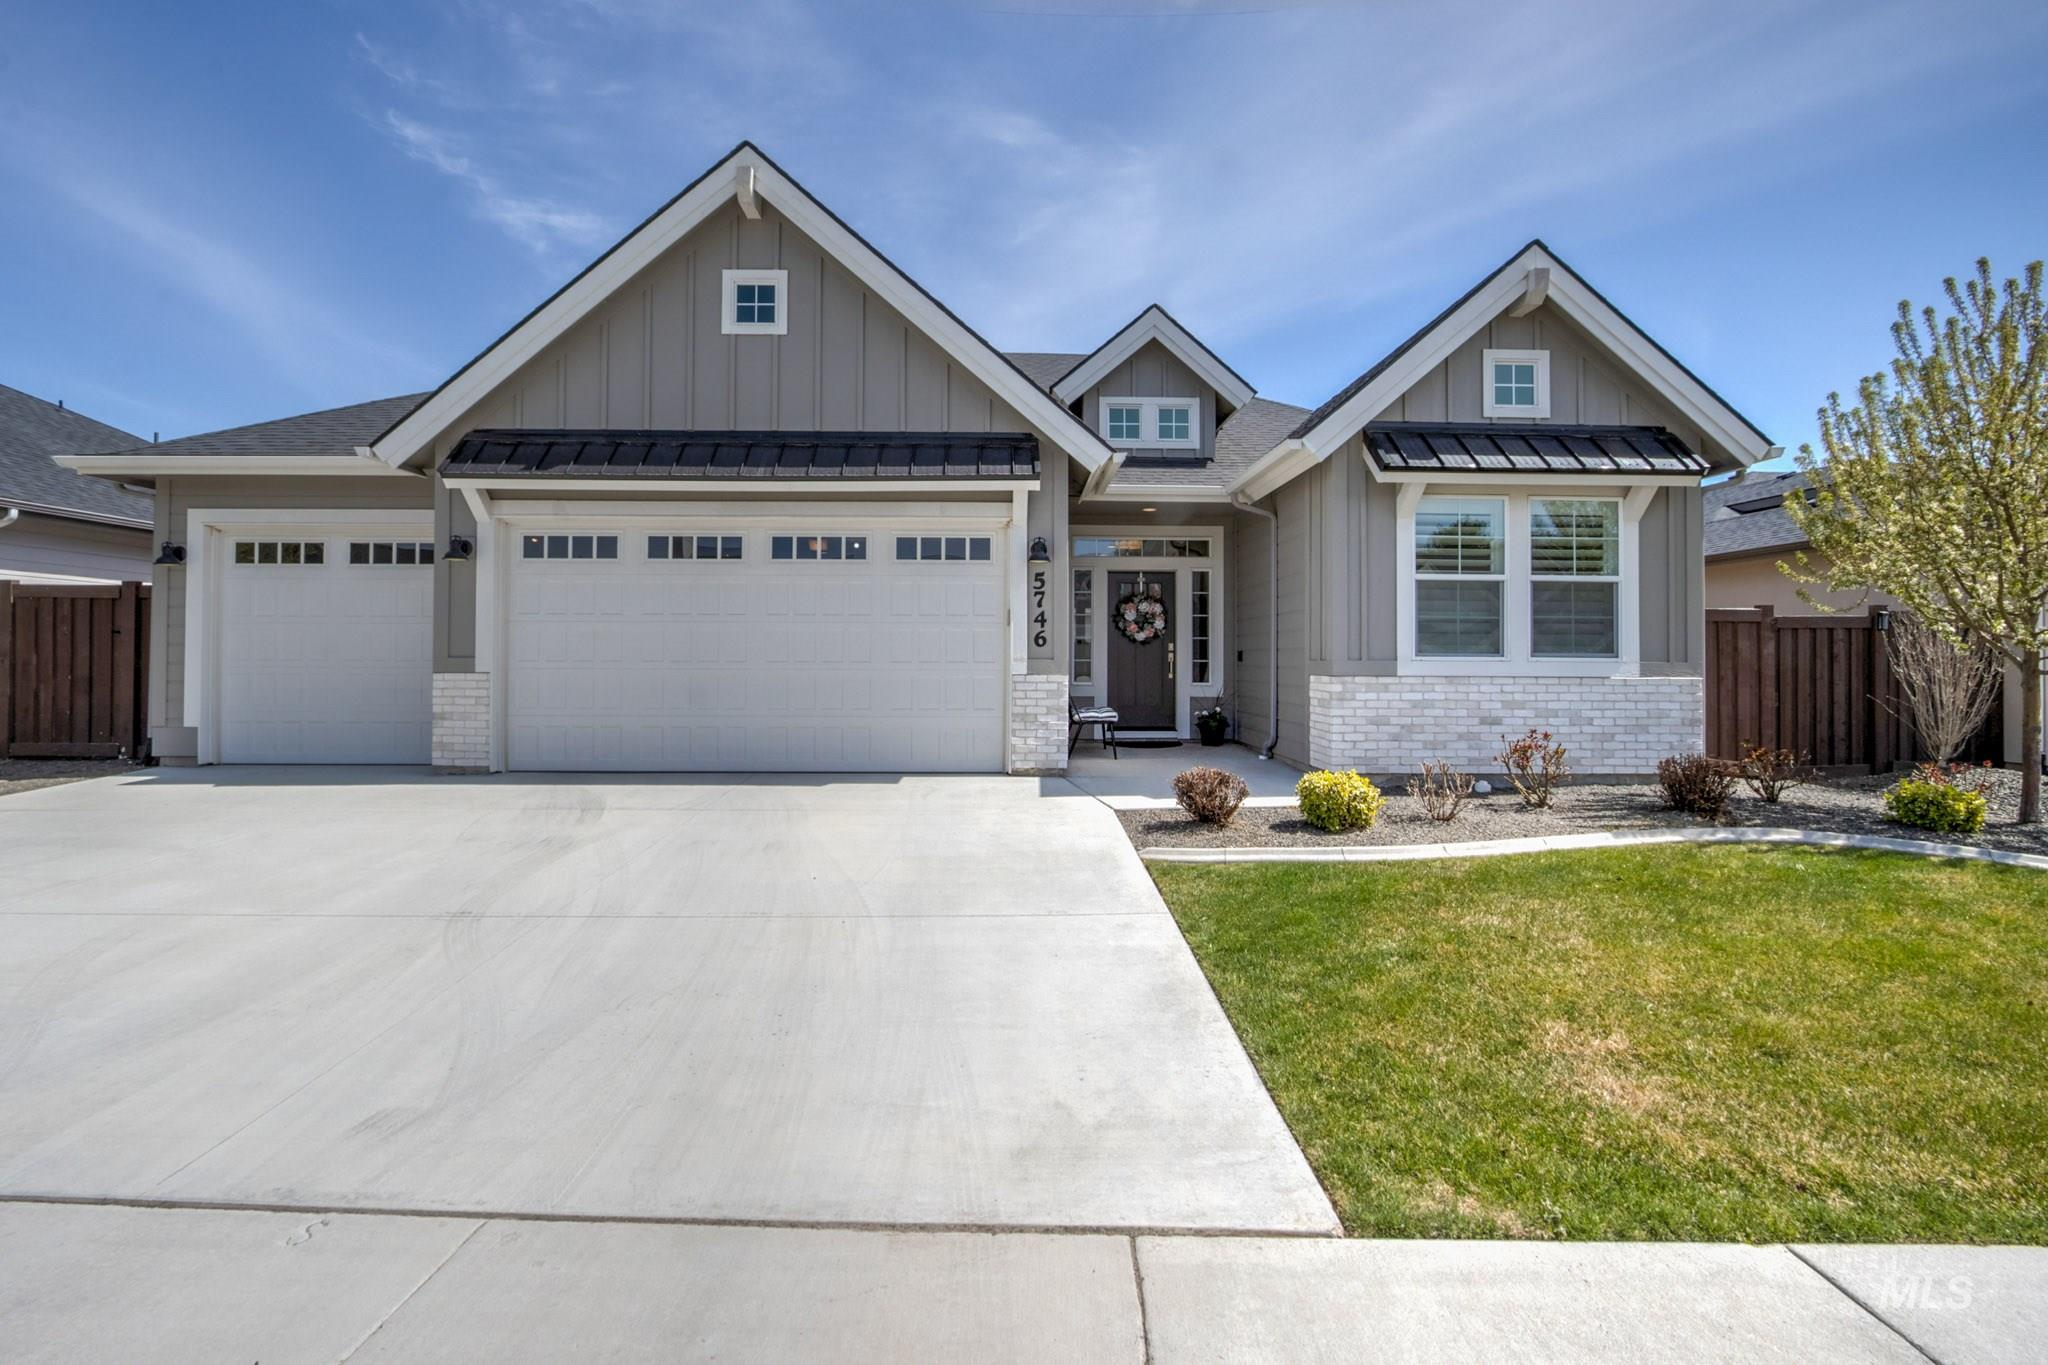 5746 N Exeter Ave Property Photo - Meridian, ID real estate listing